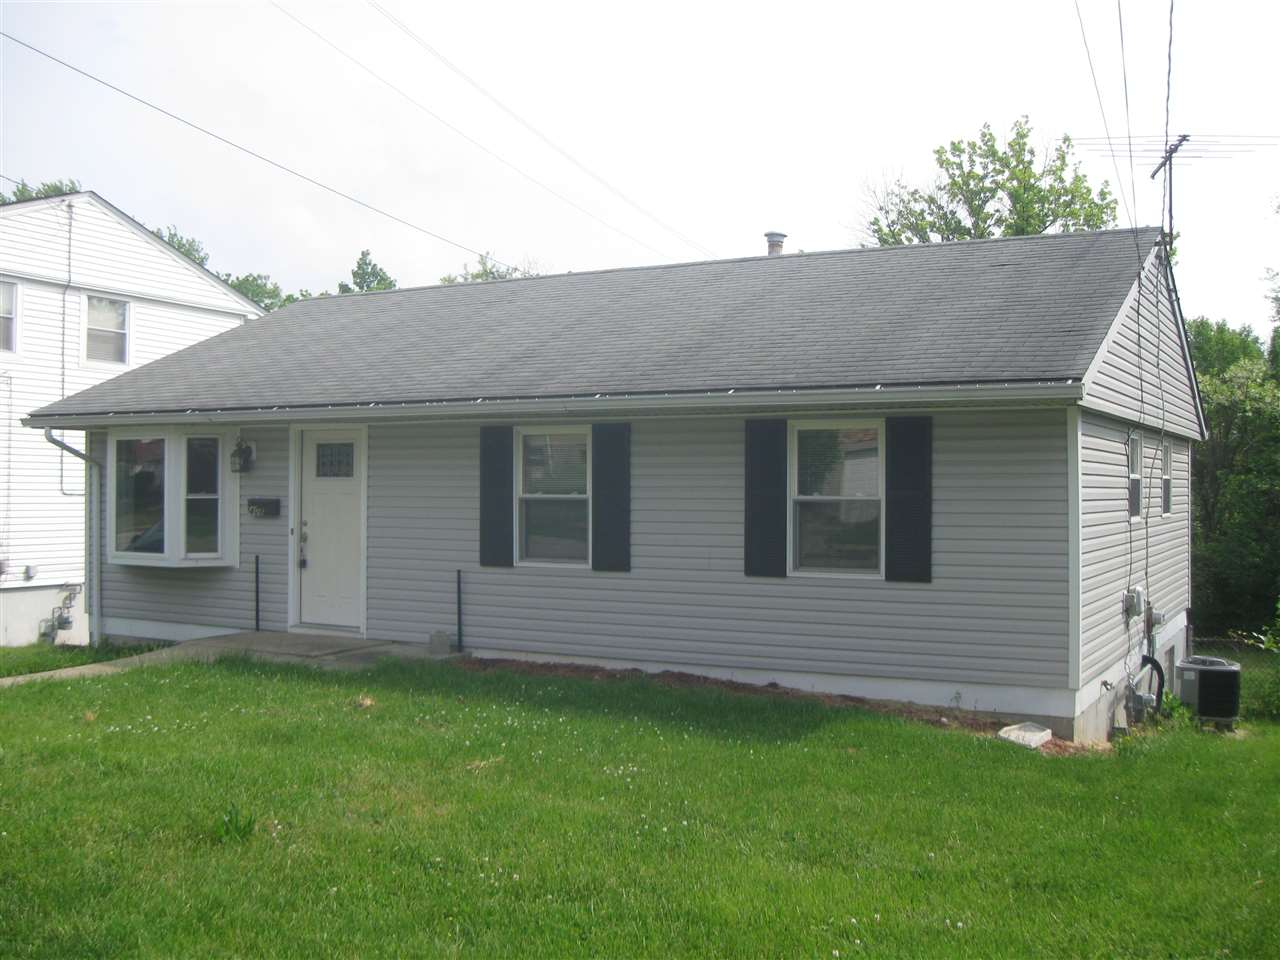 Photo 1 for 408 Caldwell Dr Elsmere, KY 41018